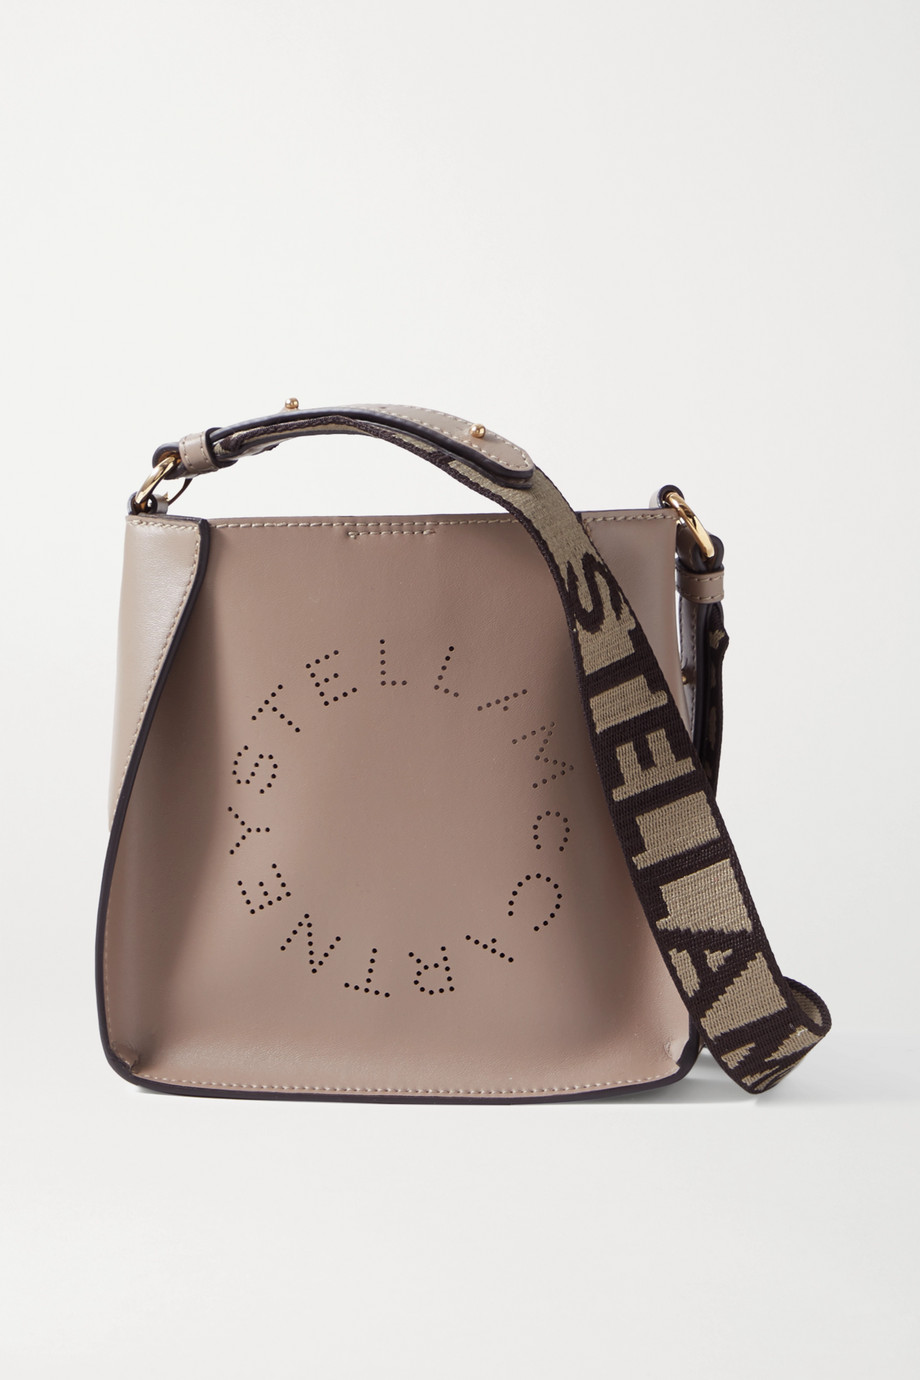 Stella McCartney Tiny perforated vegetarian leather shoulder bag